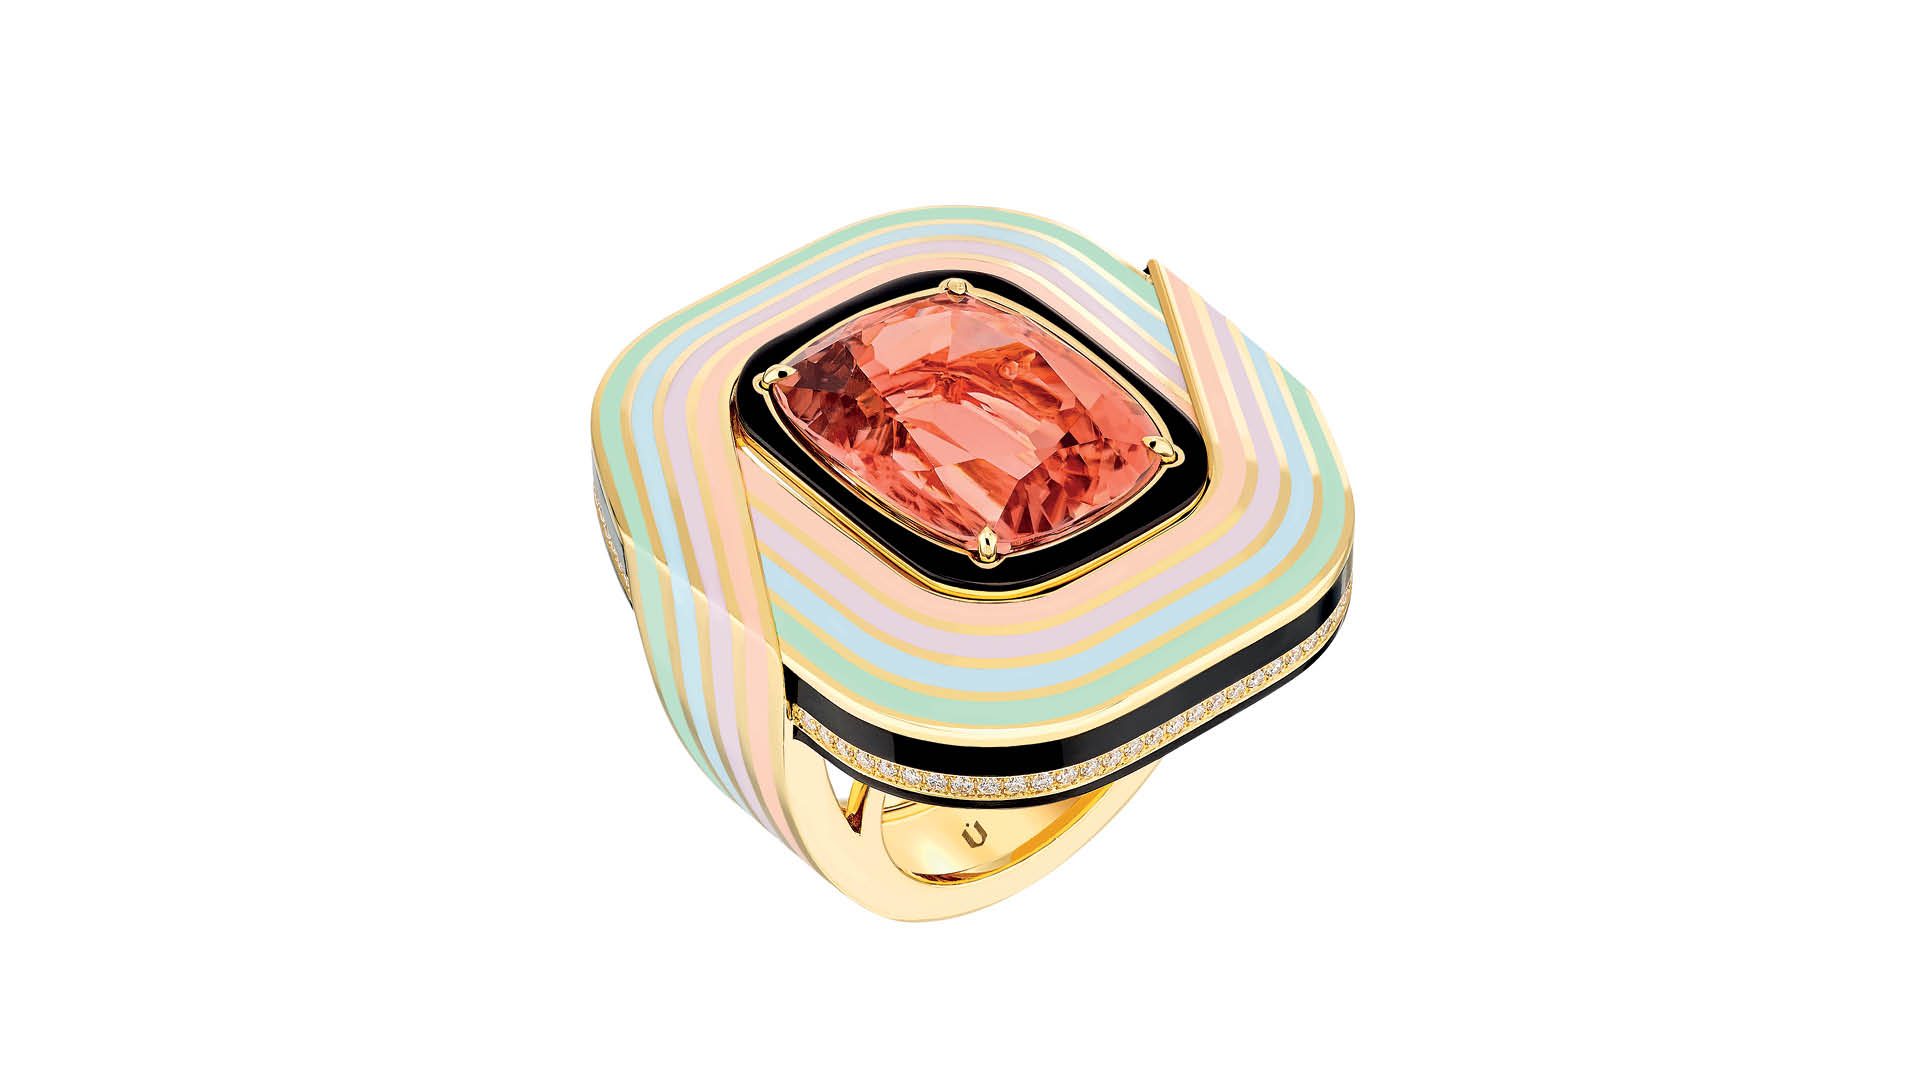 NUUN-Jewels-El-Hada-Etude-Morganite-Ring